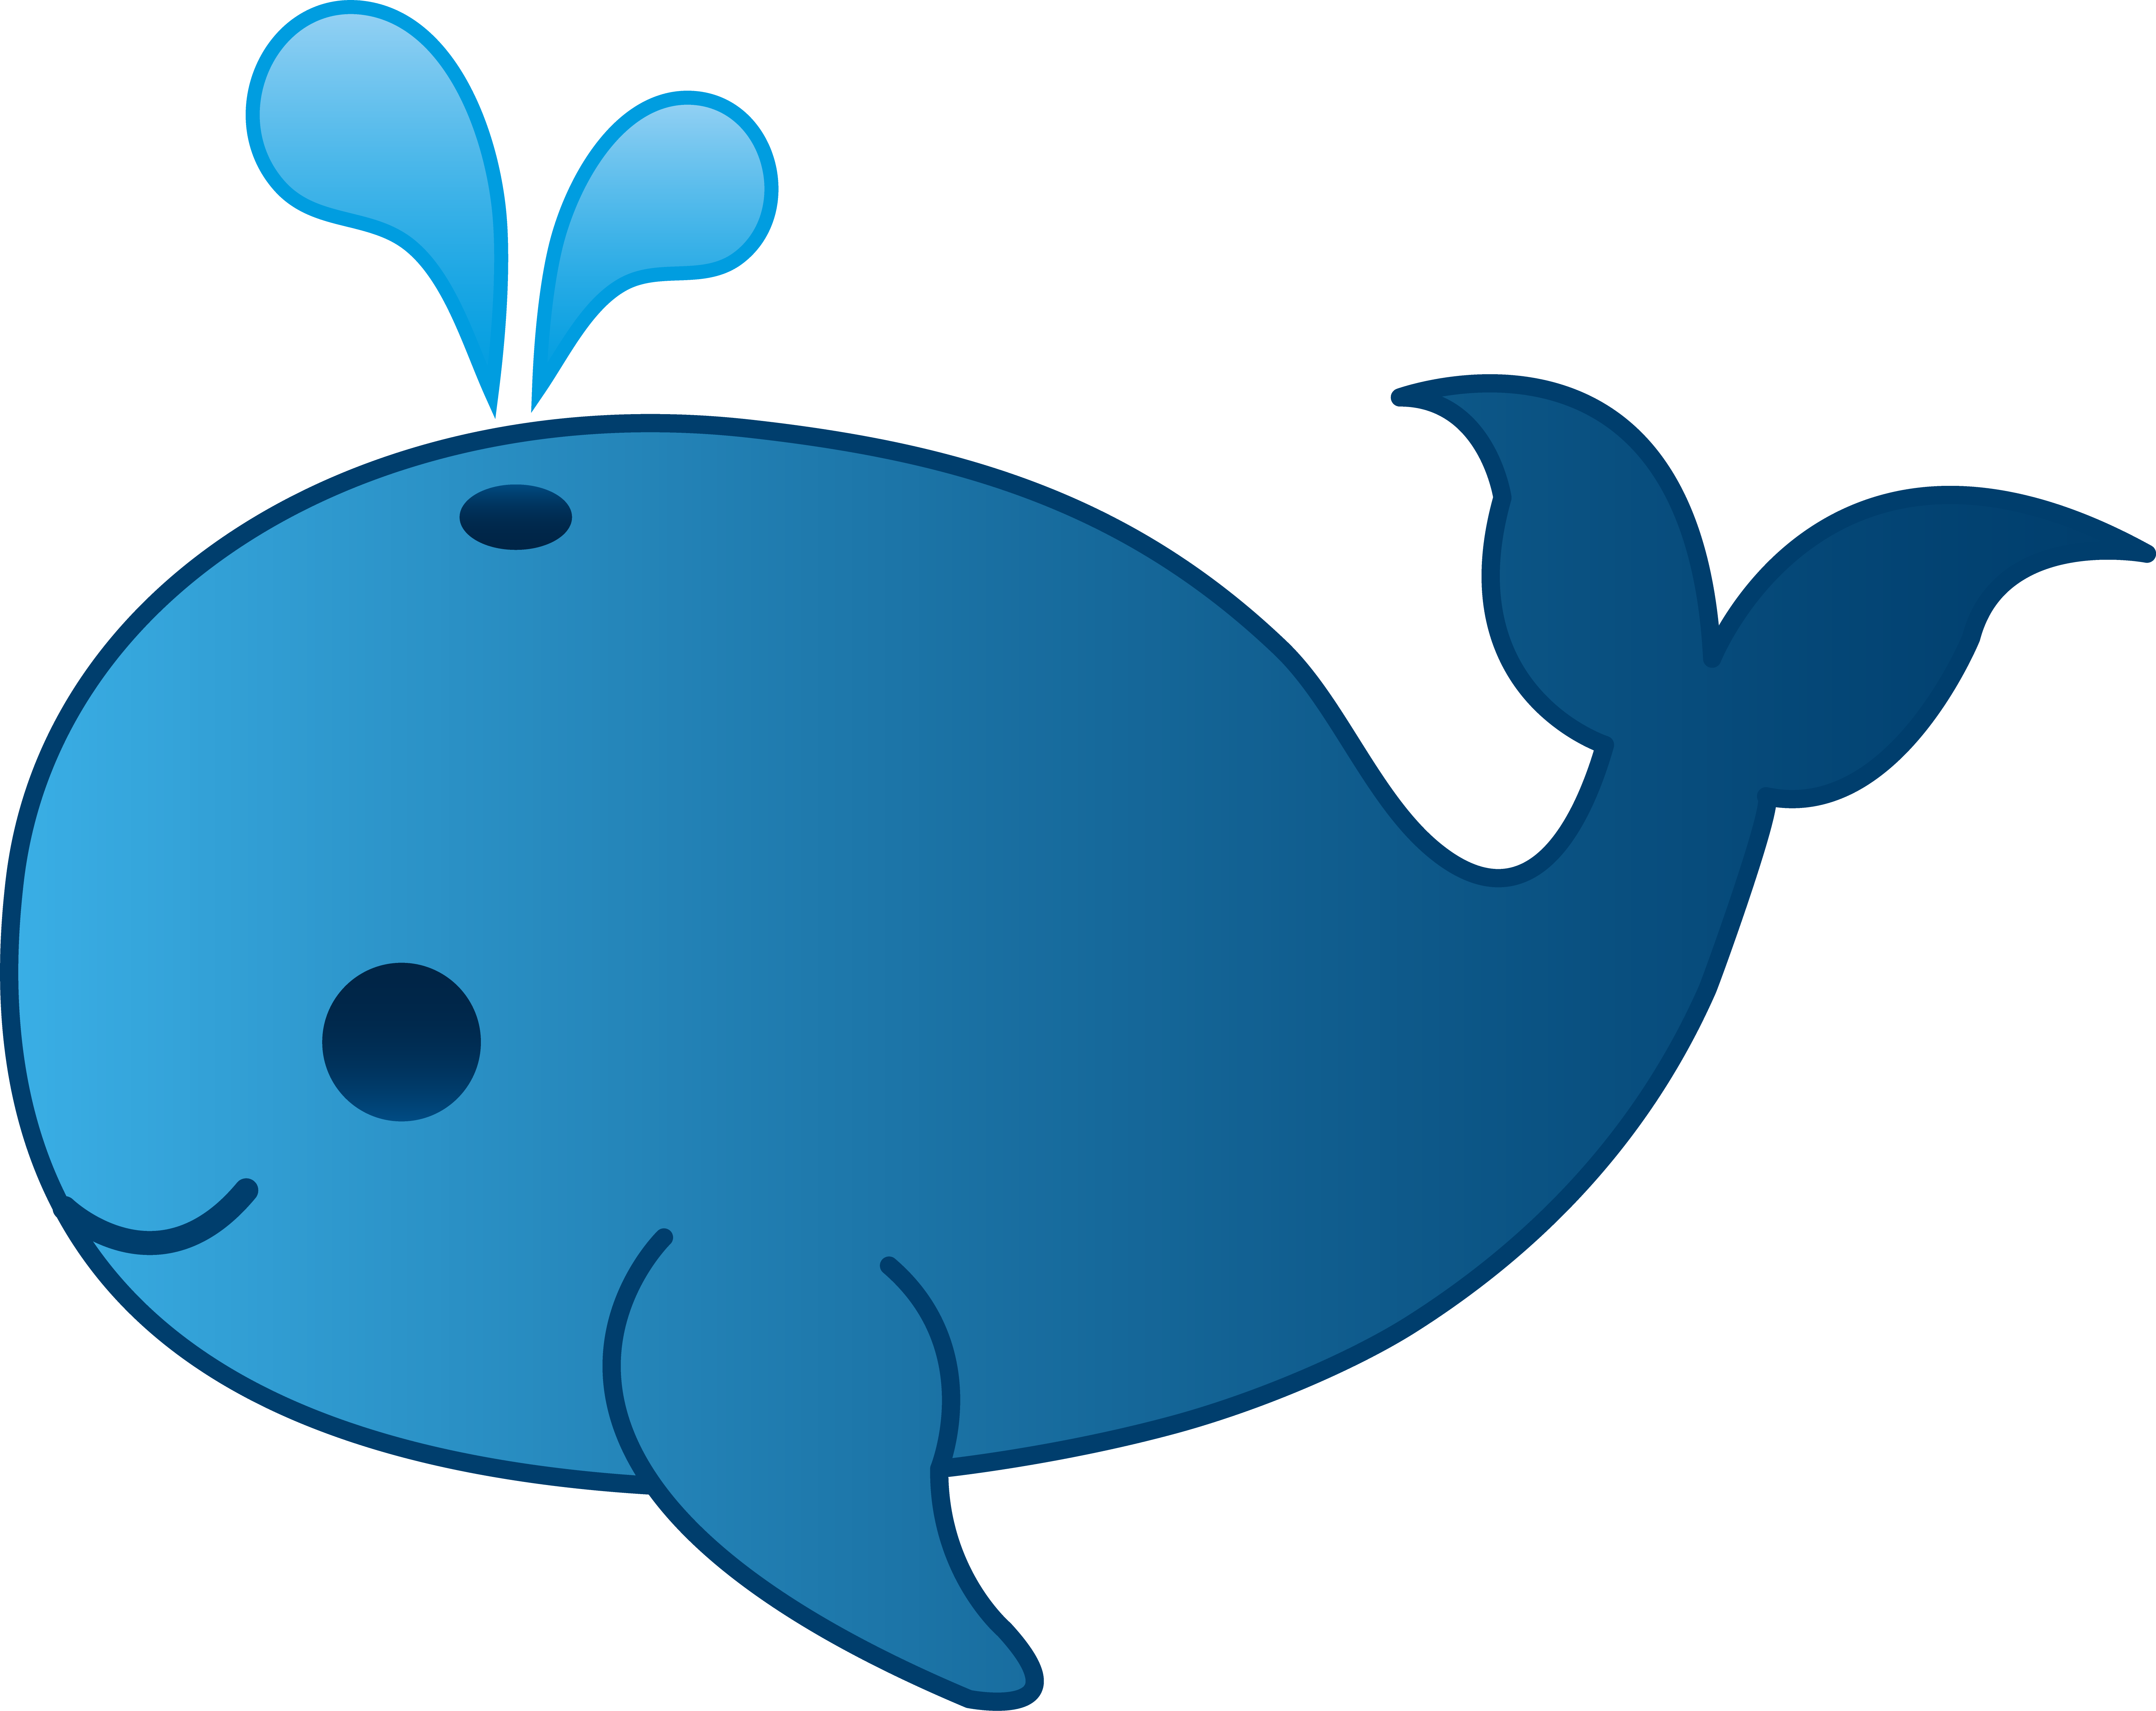 Blue Whale clipart beluga whale Cartoon Pinterest Safari‿✿⁀•● · Art